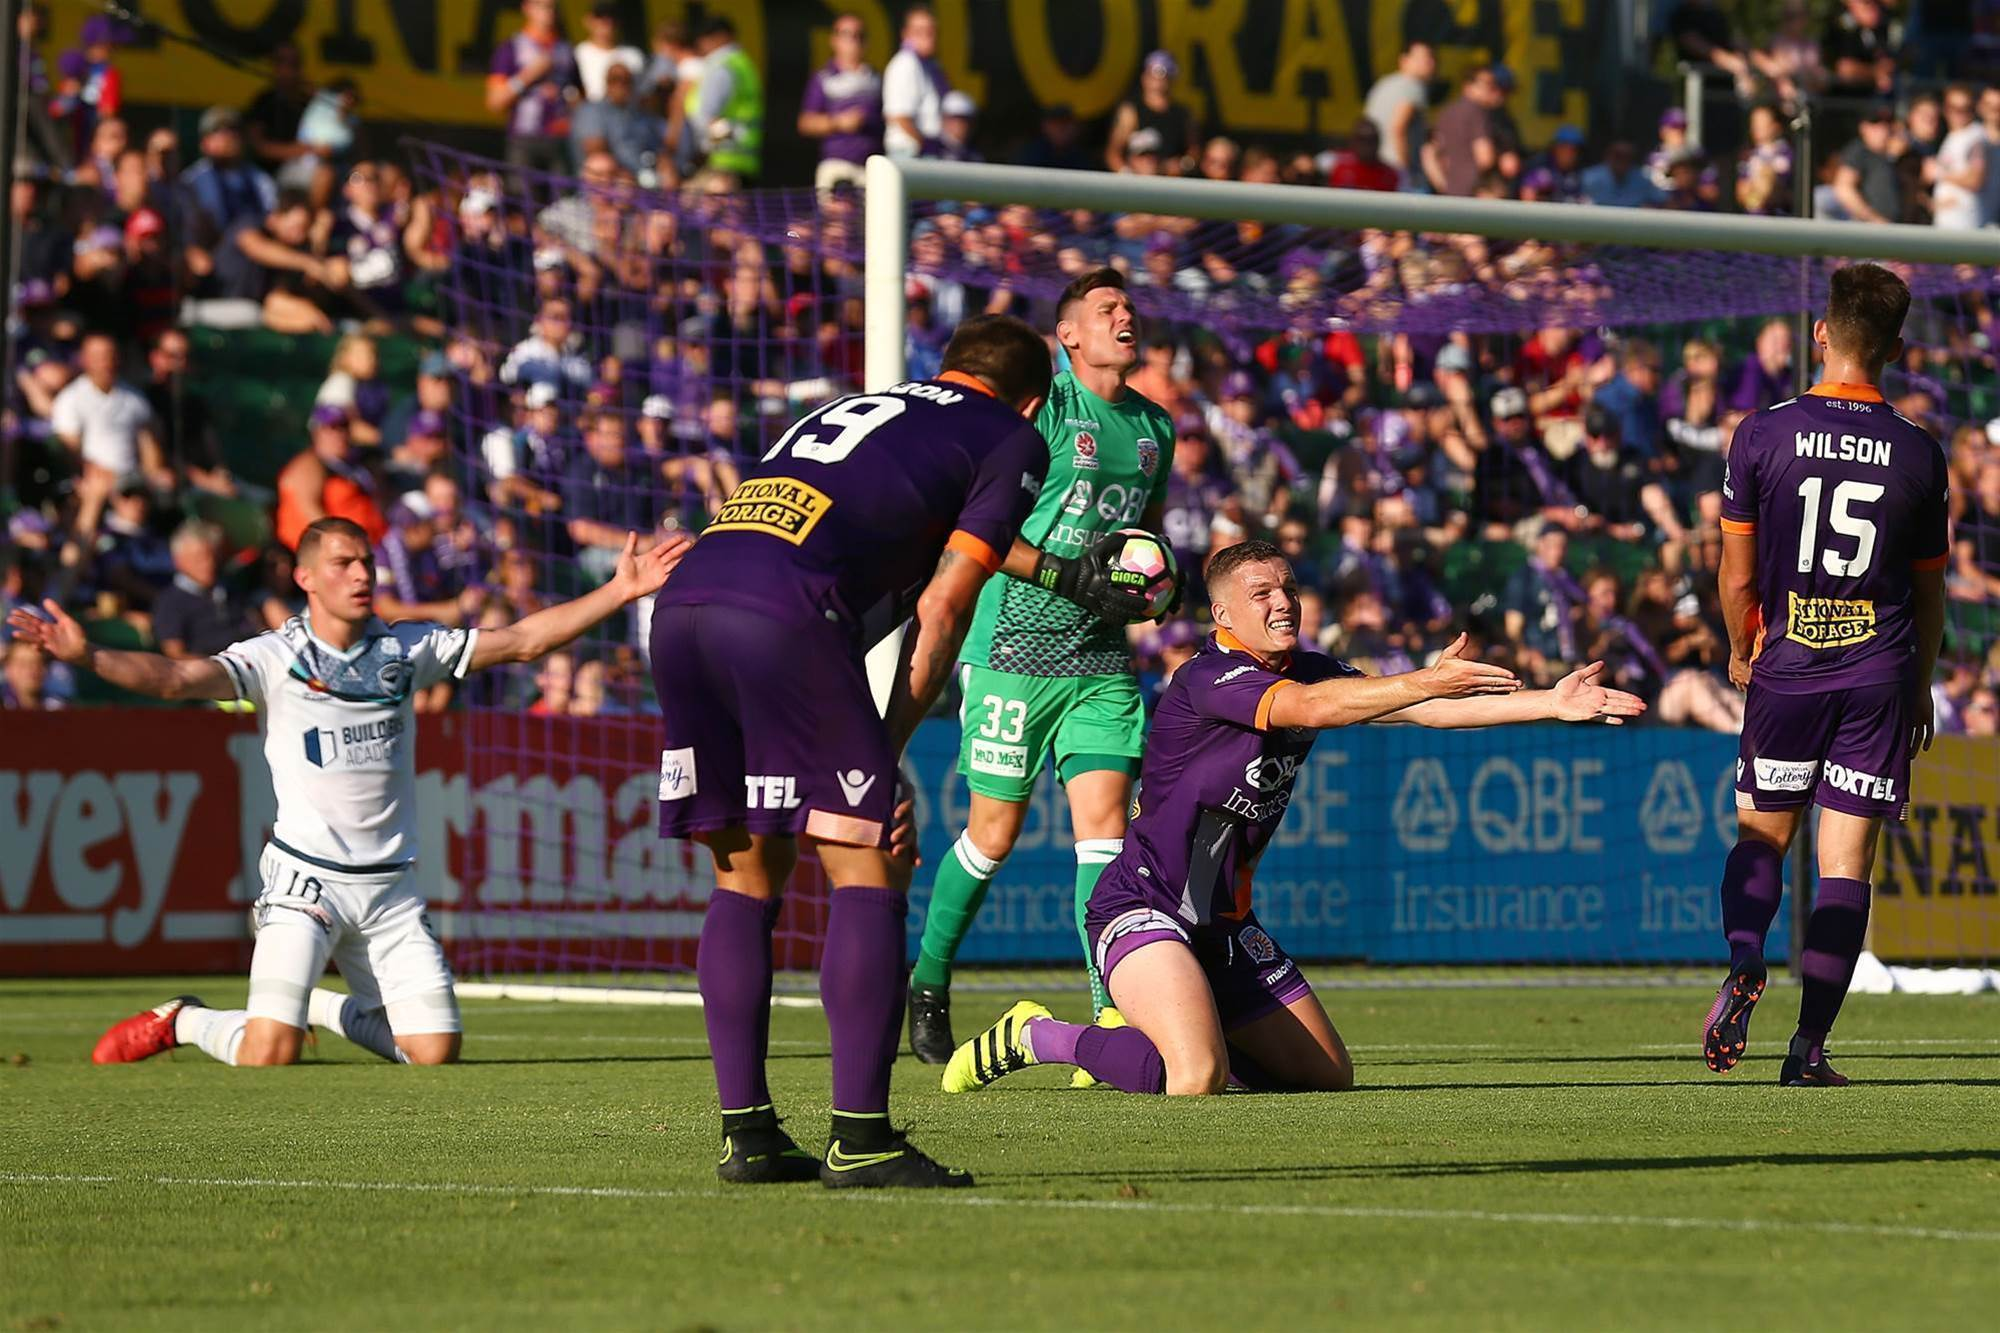 Glory v Victory pic special